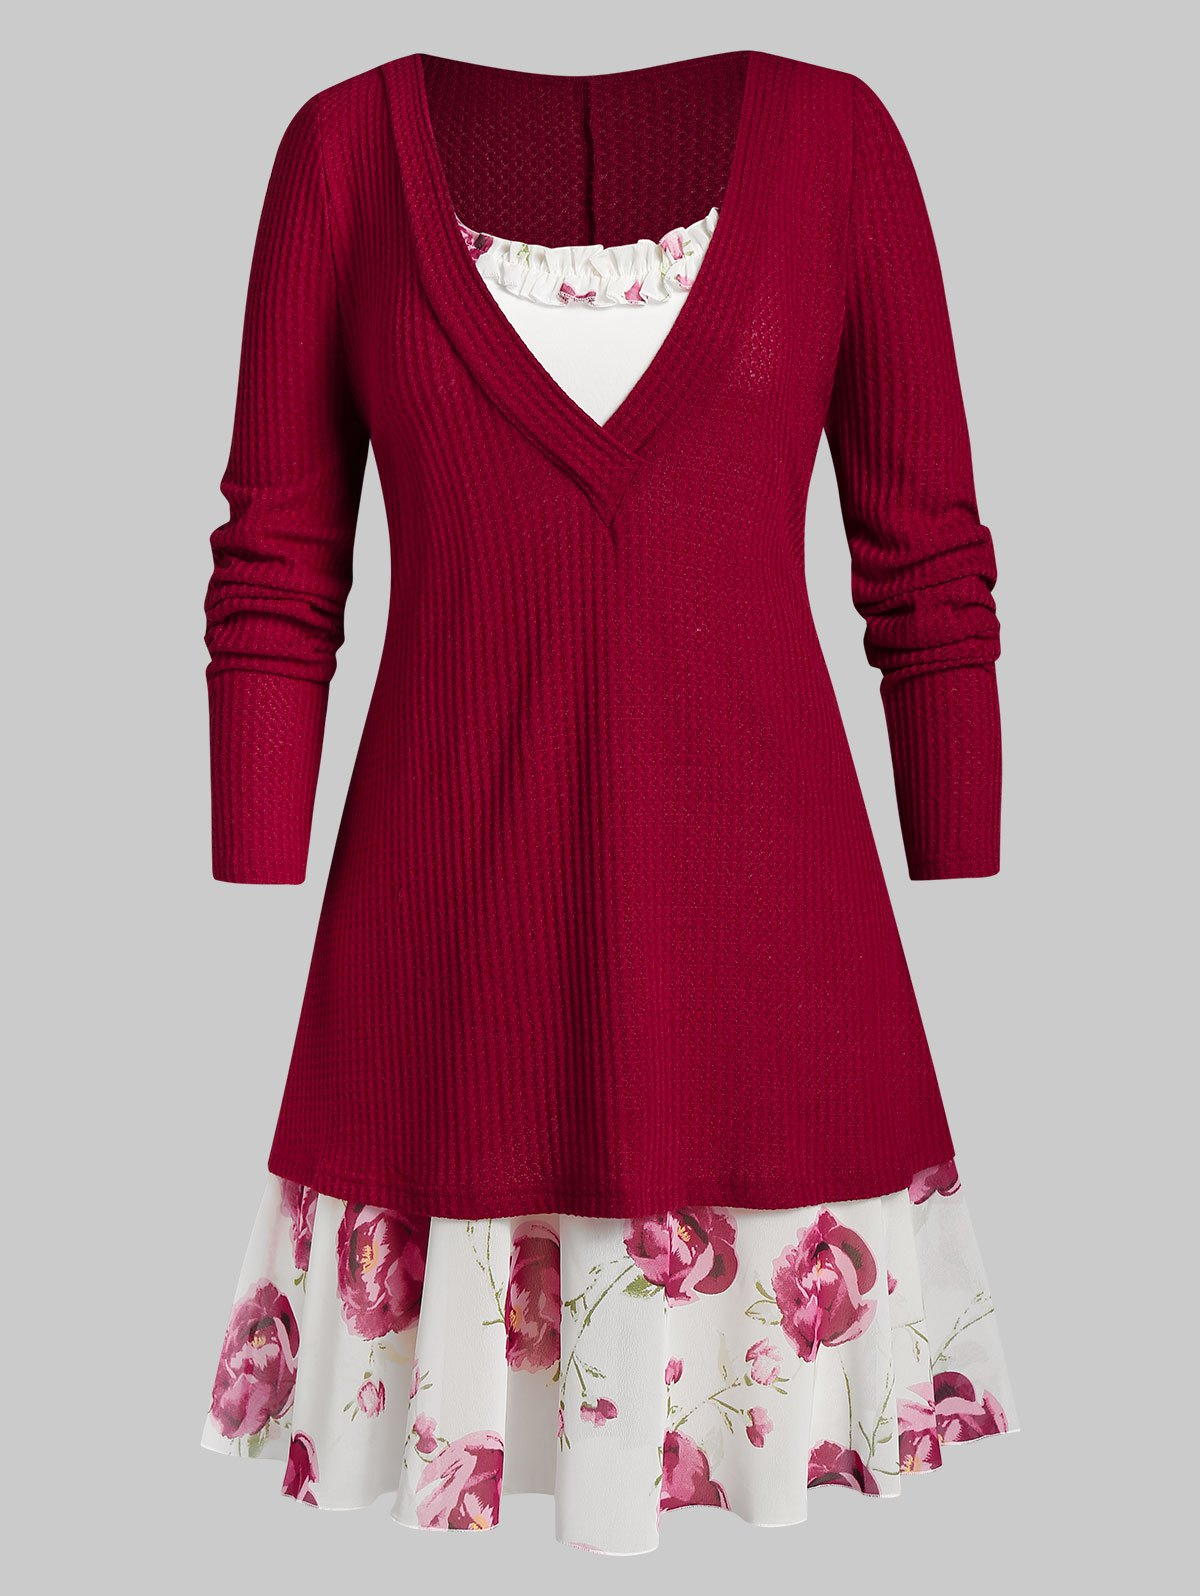 Plus Size Plunging Knitwear with Ruffle Flower Print Cami Dress